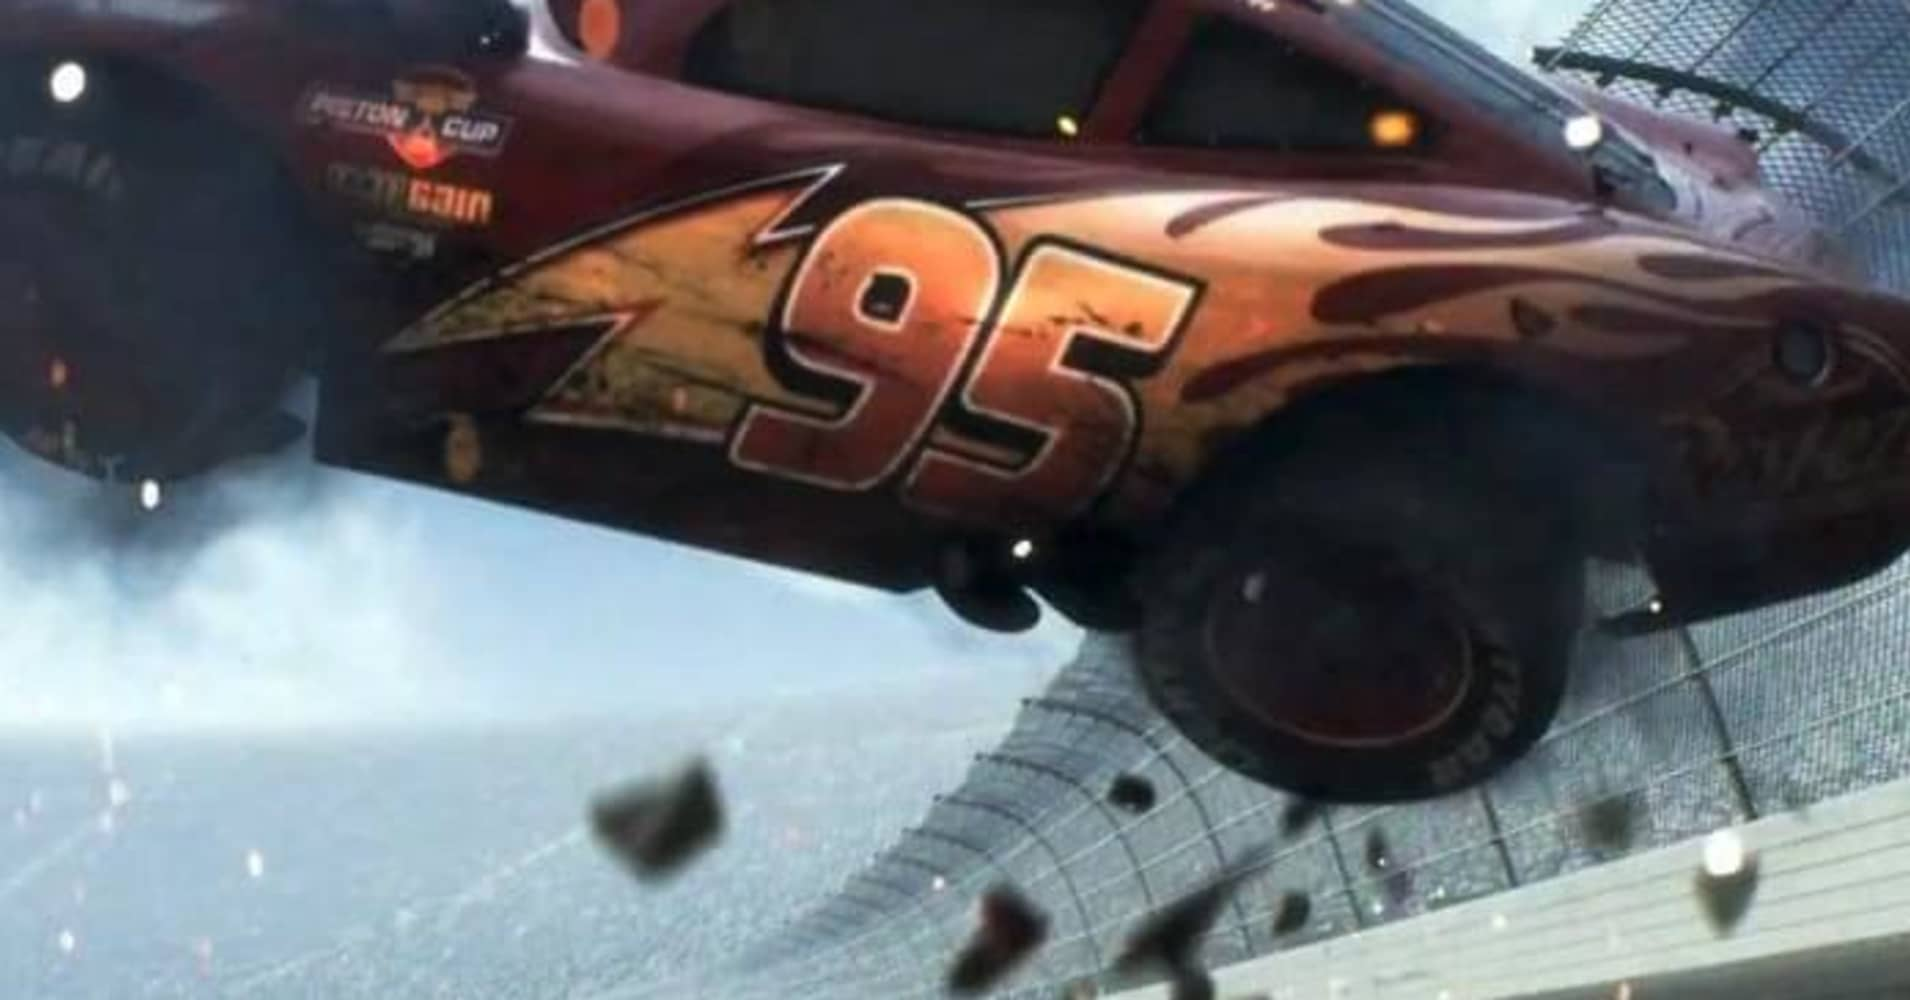 A Dark Heart Pounding Cars 3 Trailer Signals Attempt To